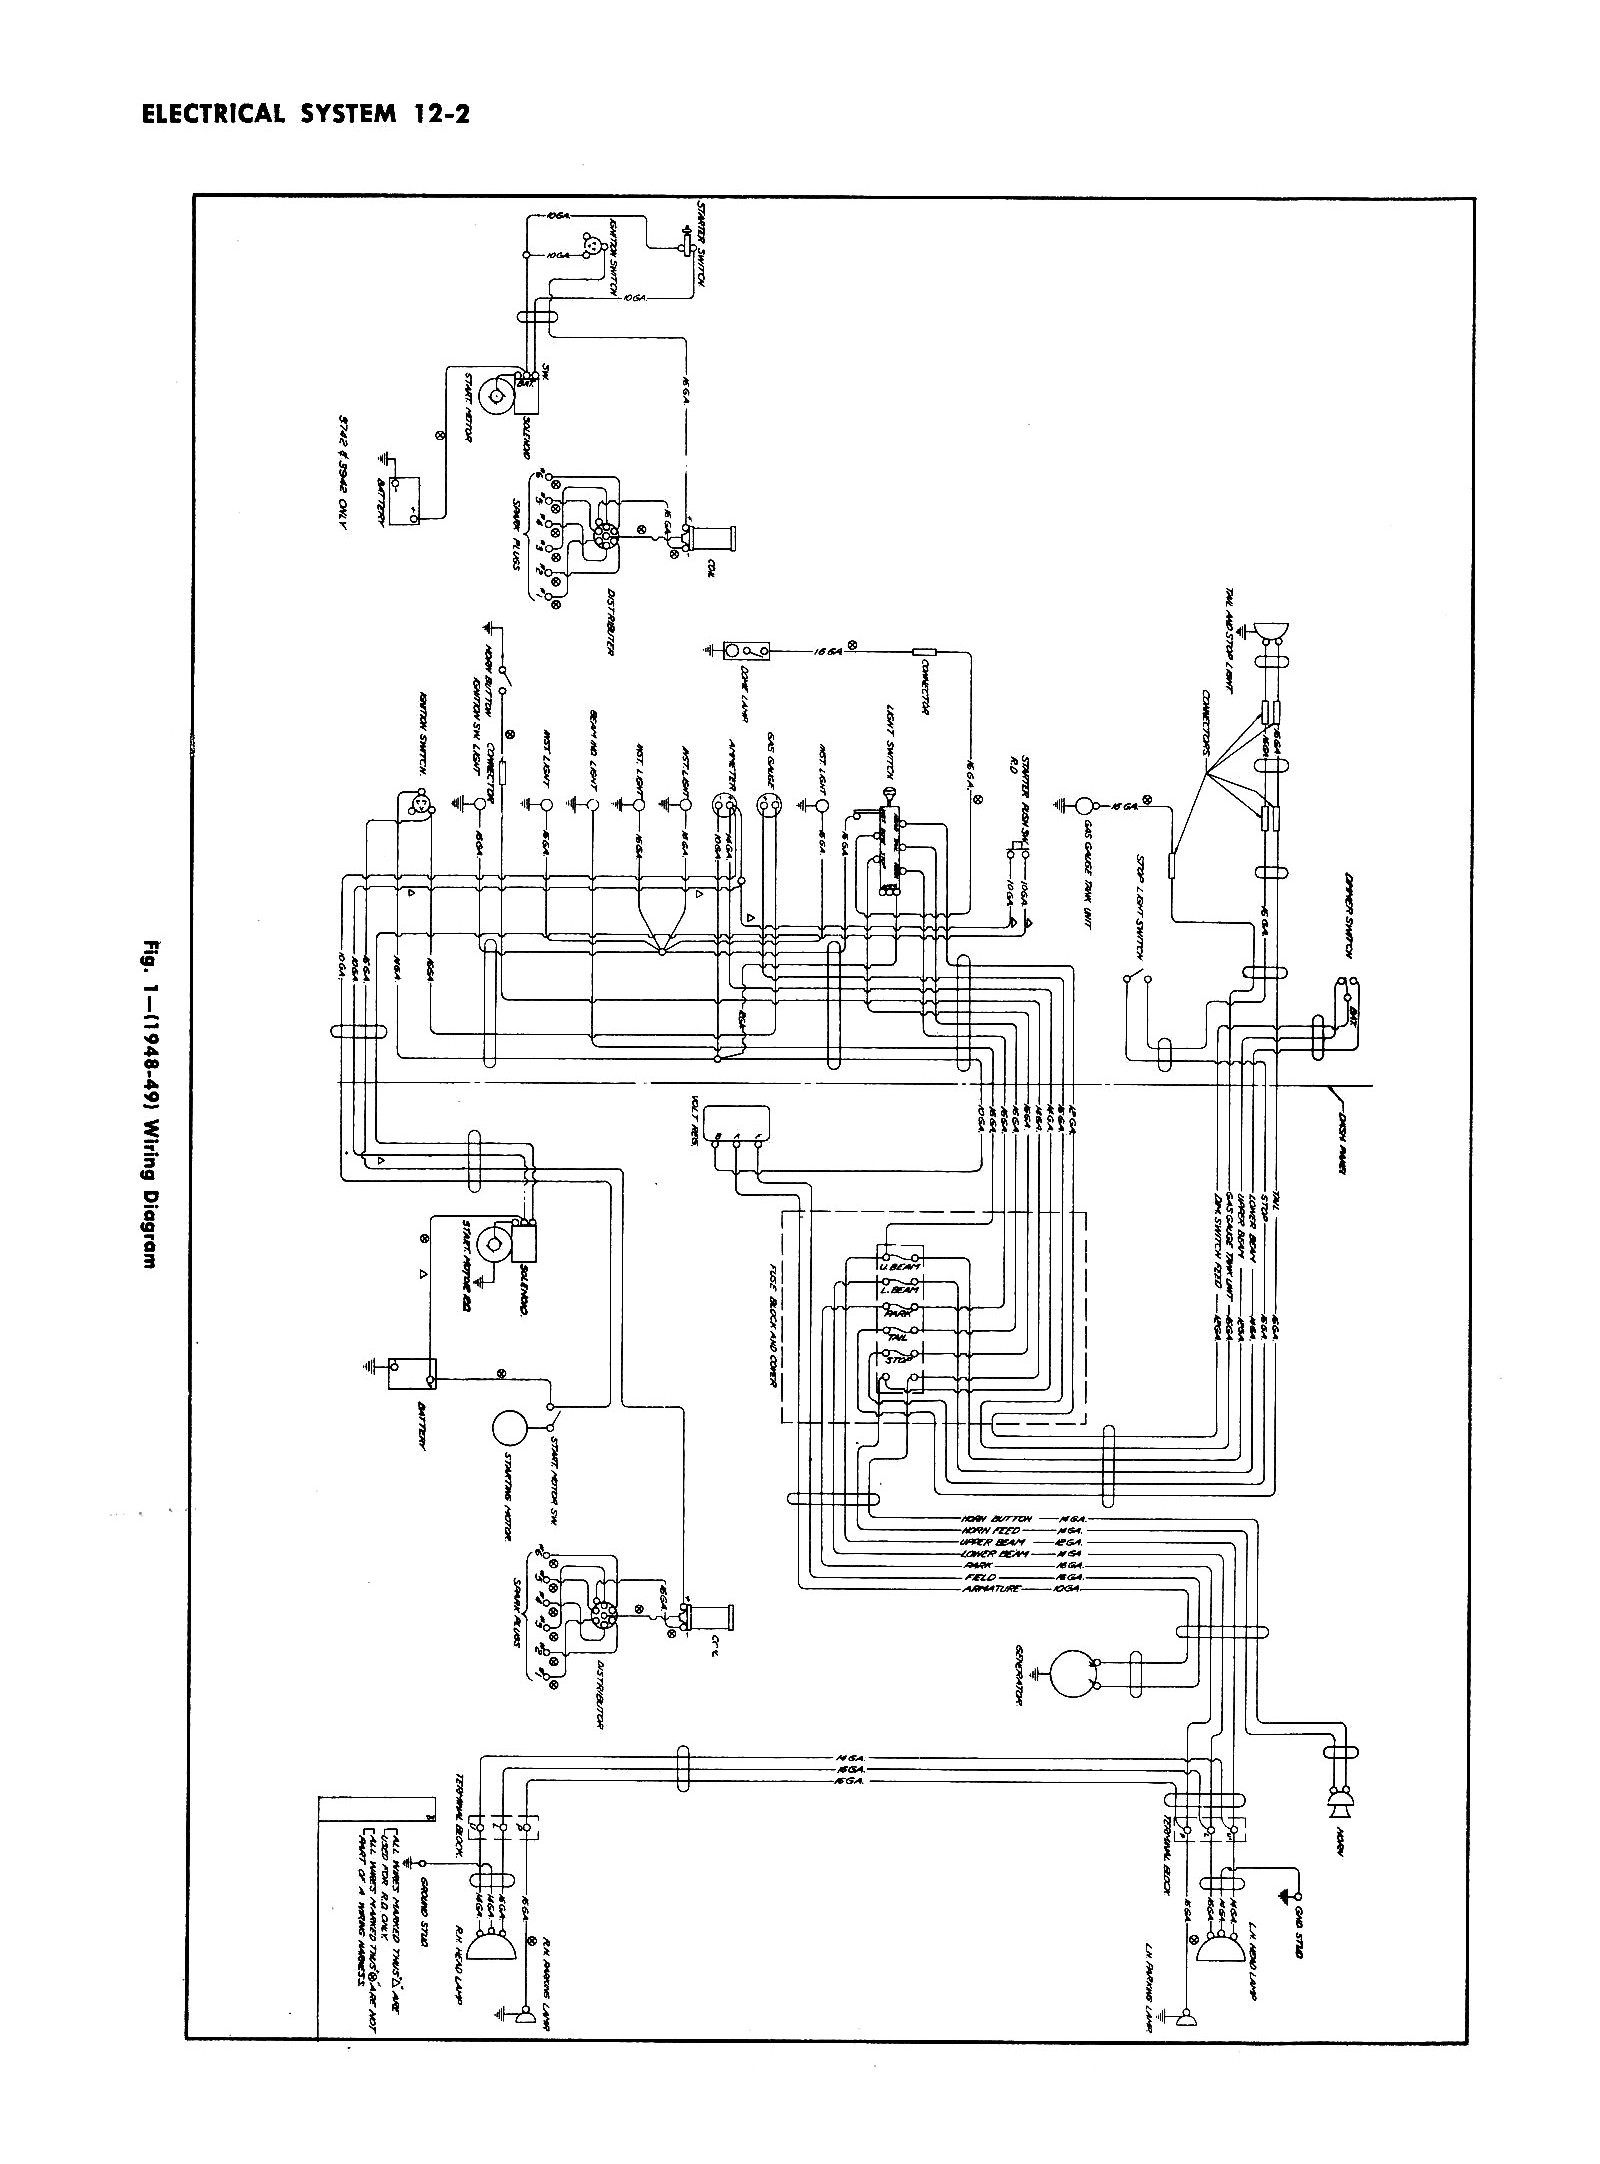 38 chevy truck wire diagram wiring diagram38 chevy truck wire diagram wiring diagram38 chevy truck wire diagram wiring library1949 truck wiring chevy